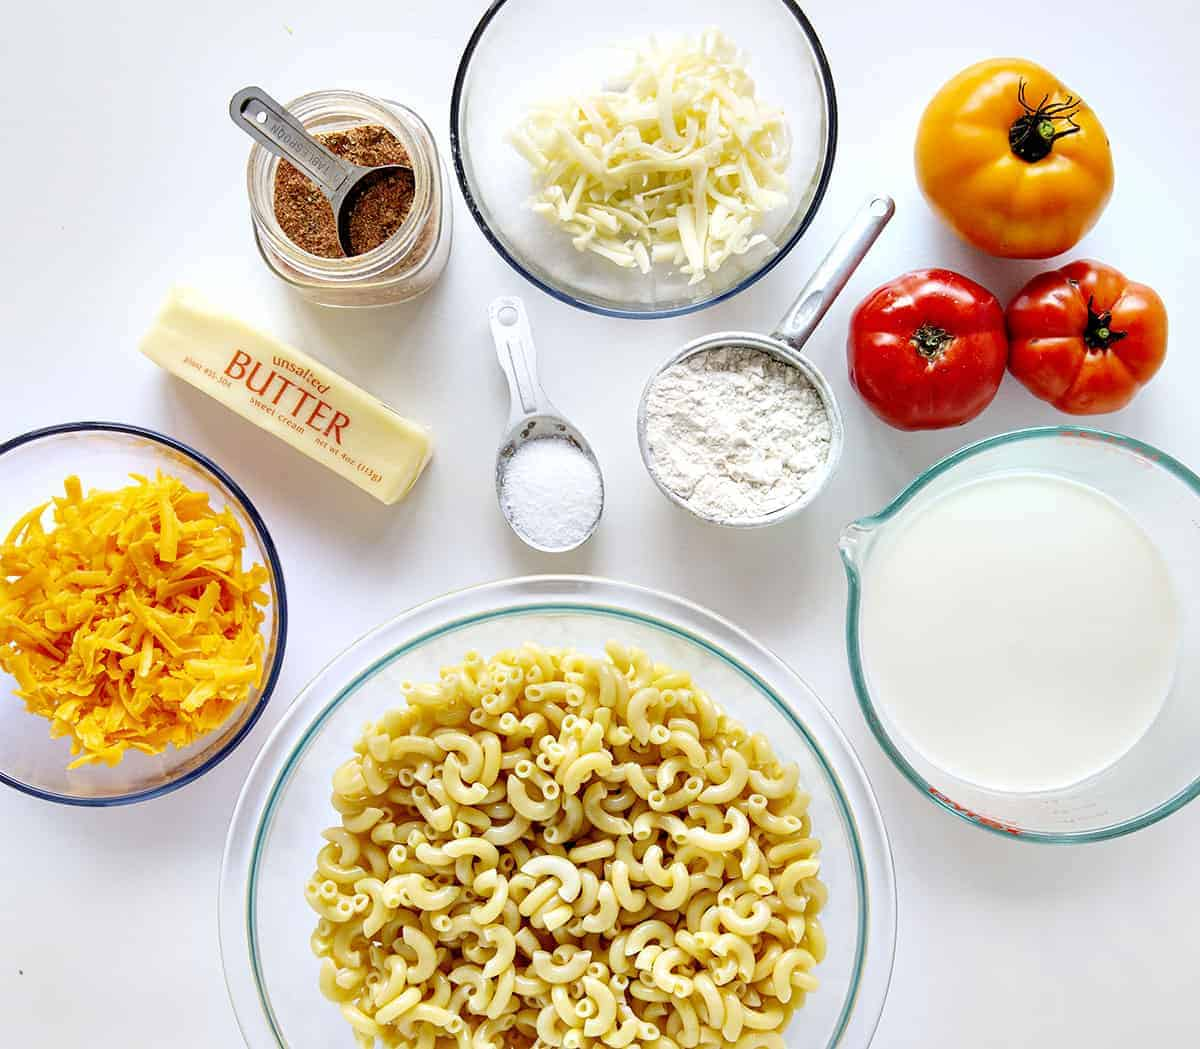 Ingredients for Cajun Chicken Macaroni and Cheese